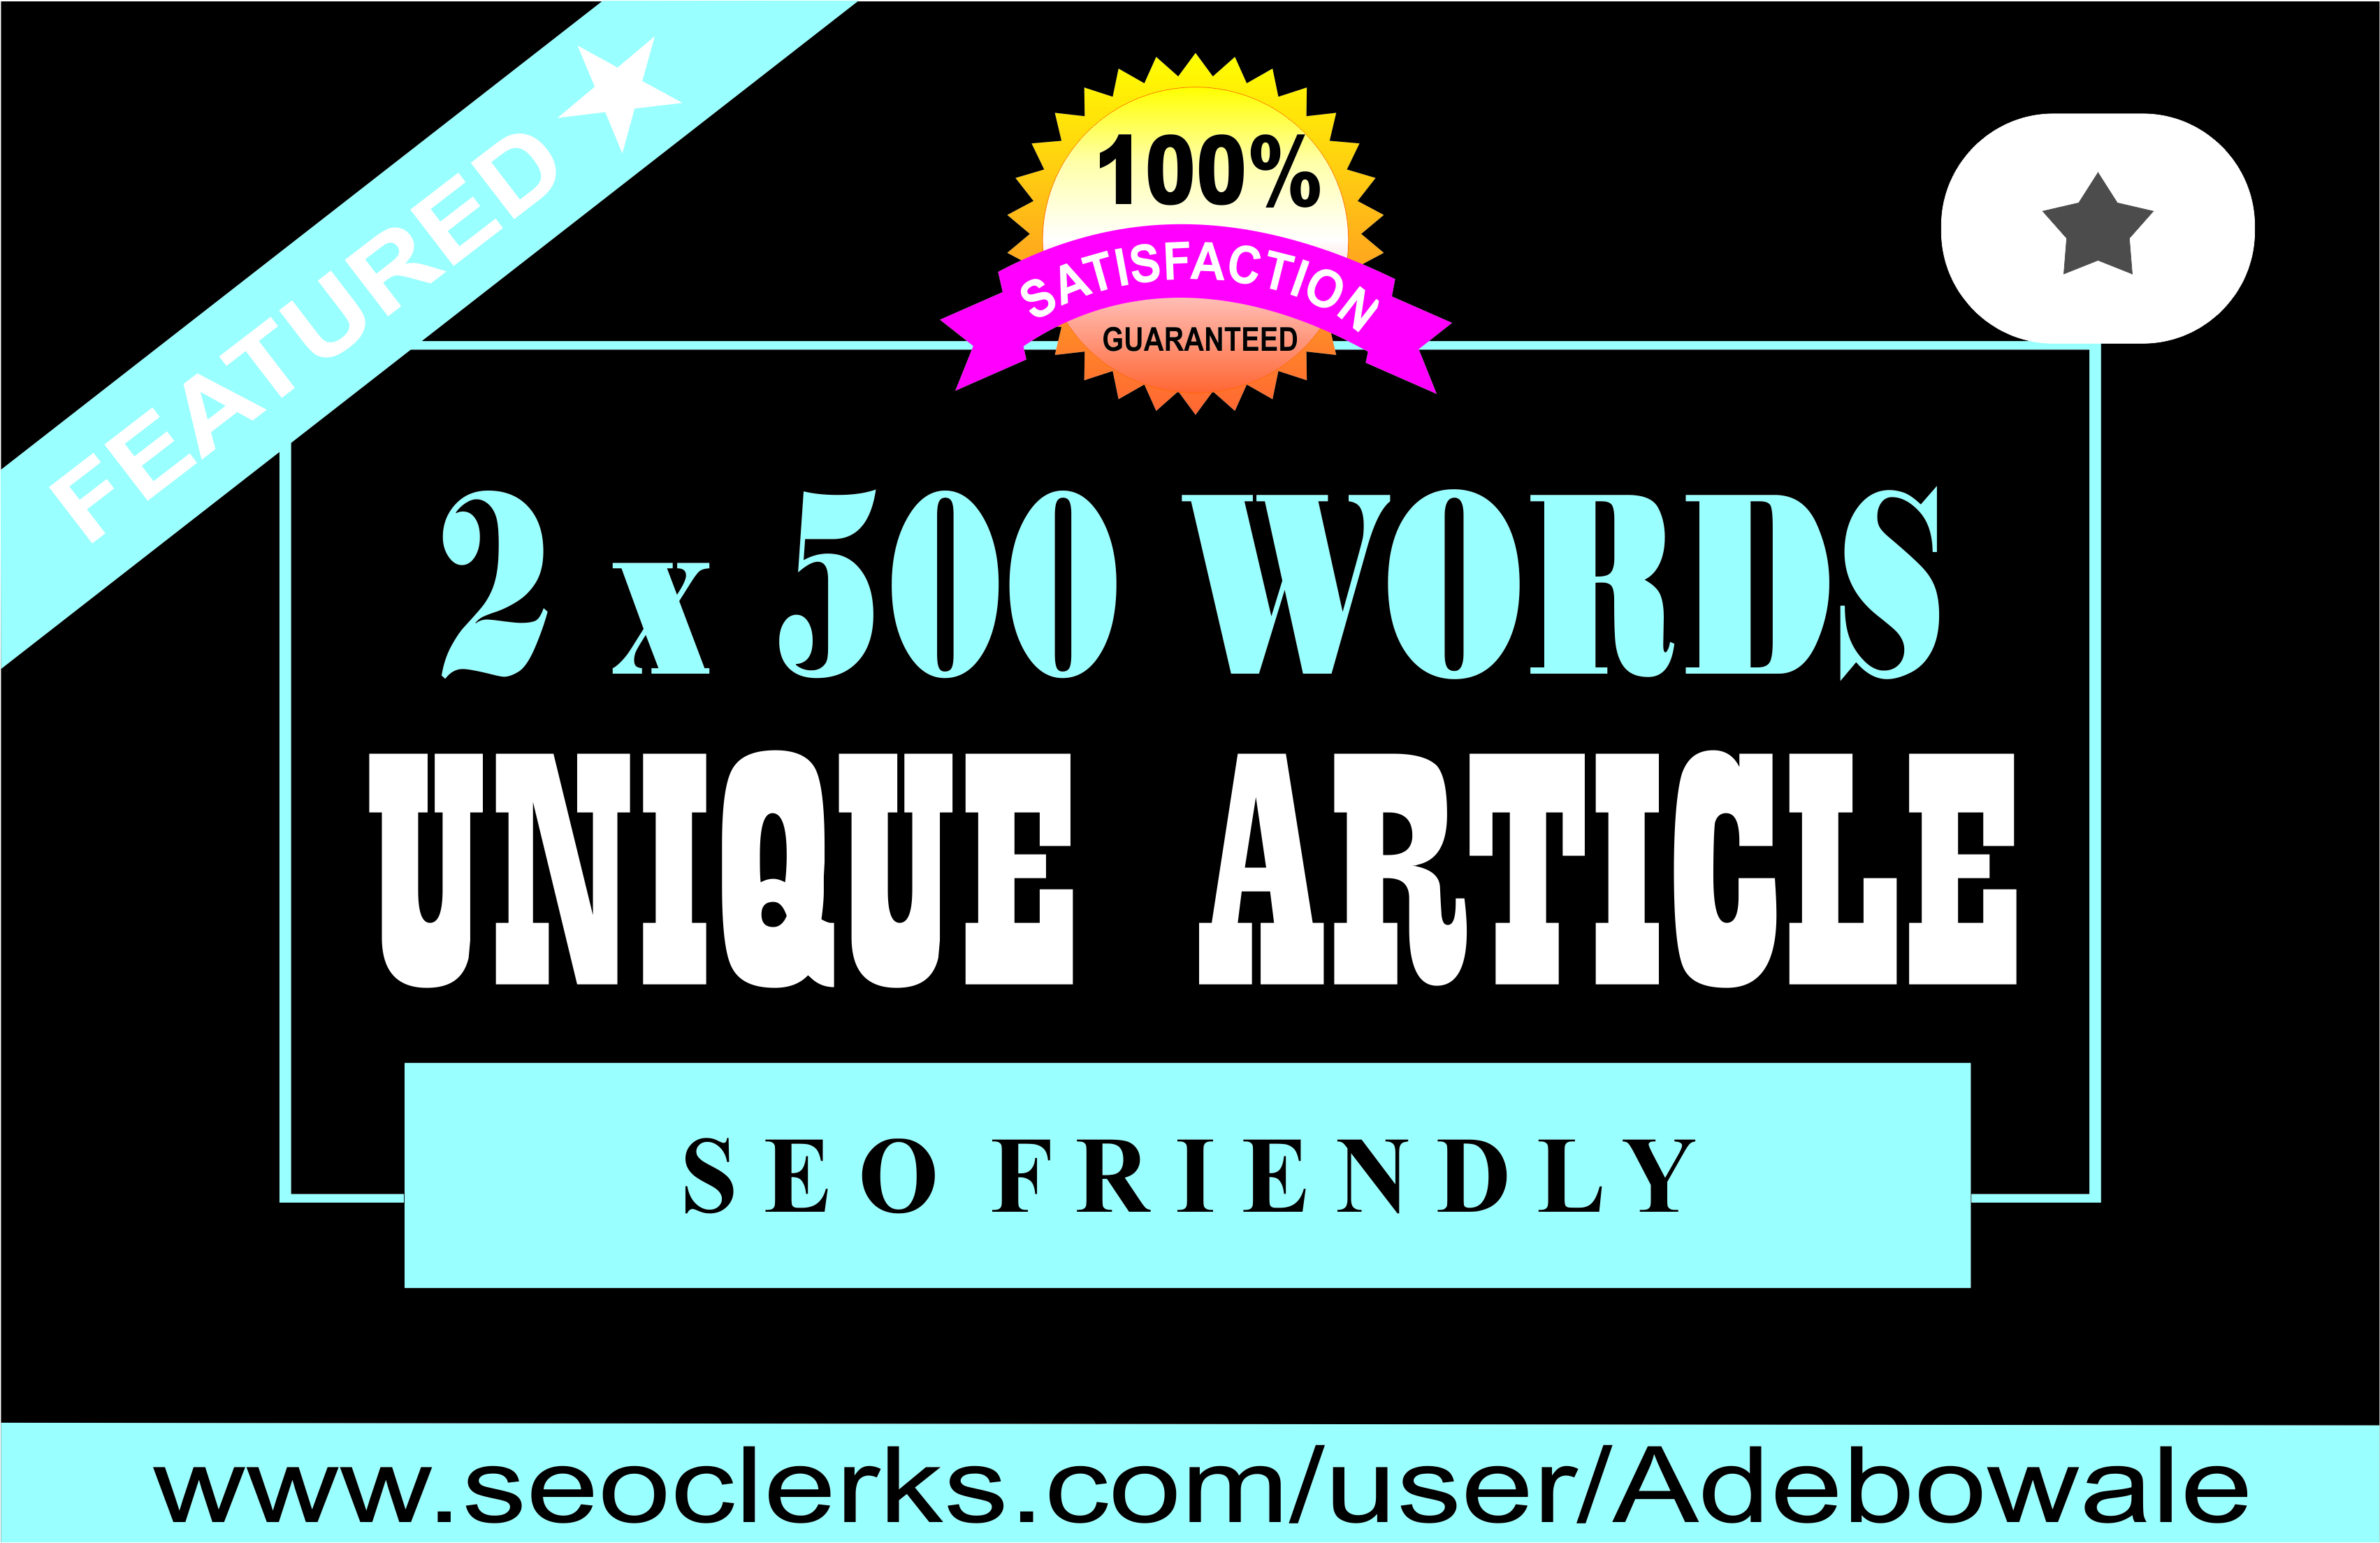 2 x 500 words Premium Article writing / Content Writing